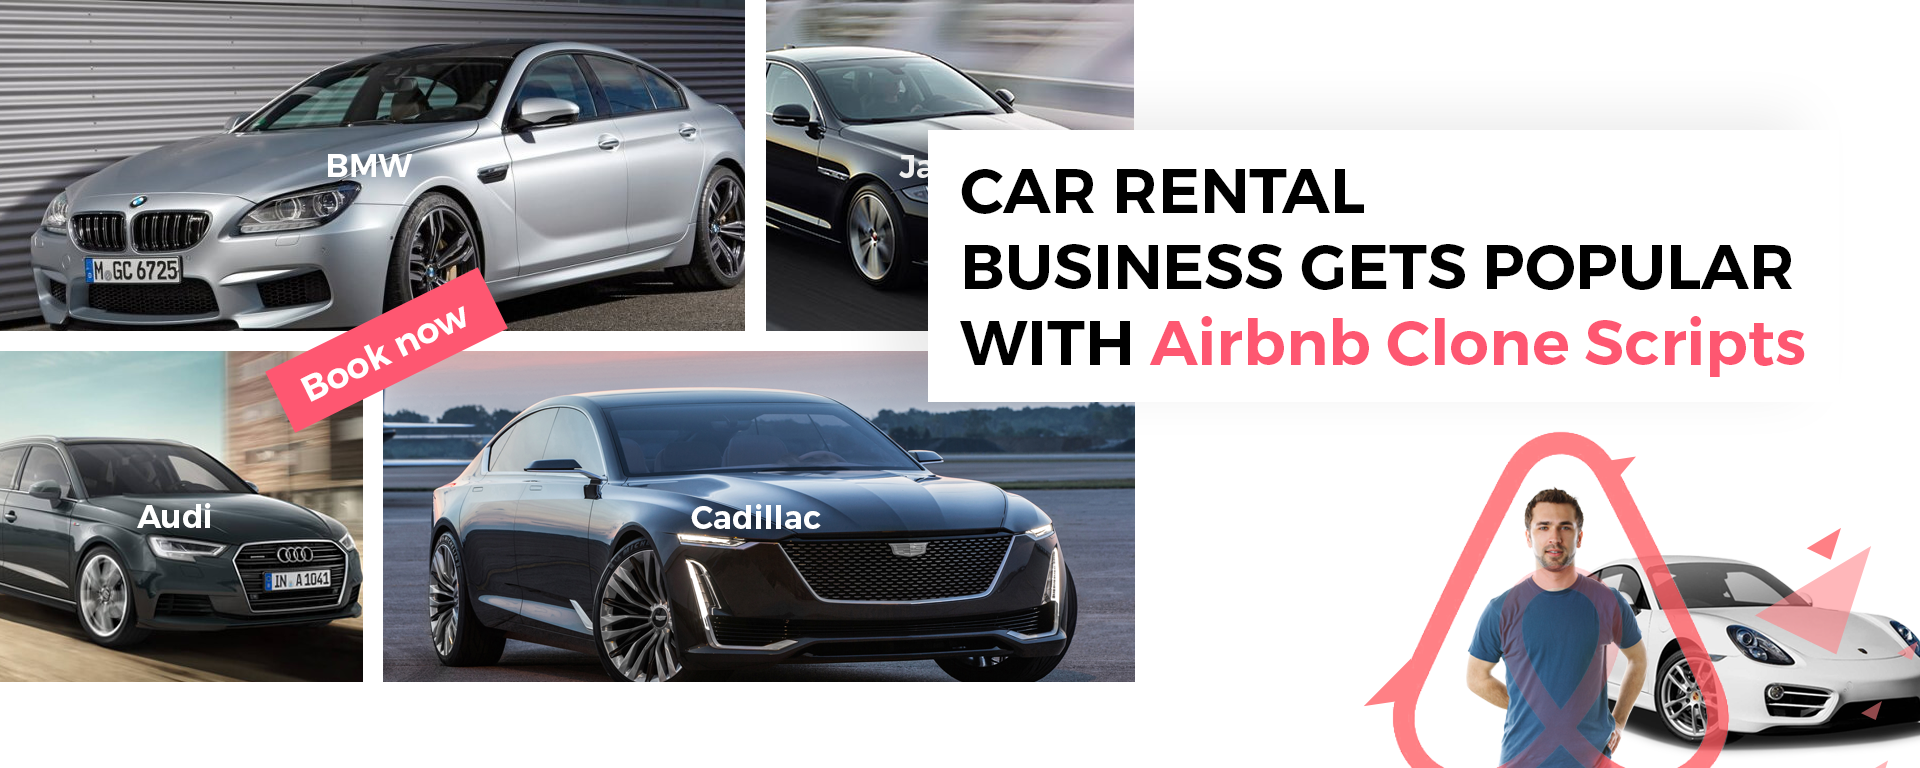 Car Rental business gets Popular with Airbnb Clone Scripts – Here are the Reasons